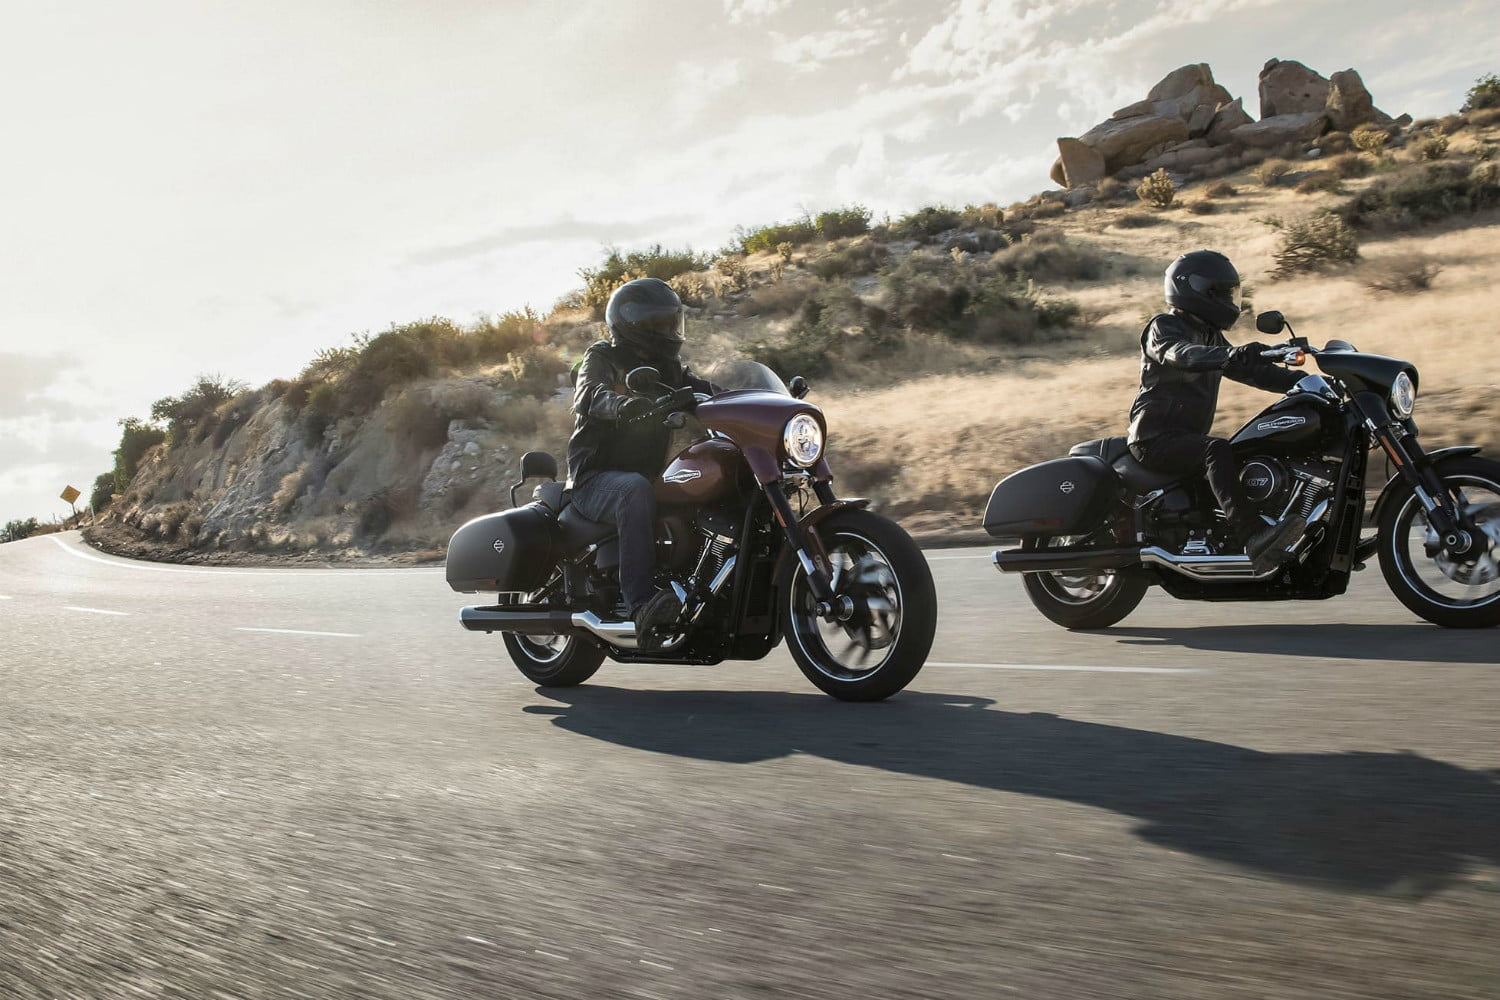 Compare motorcycle prices and features before buying used Motorcycle